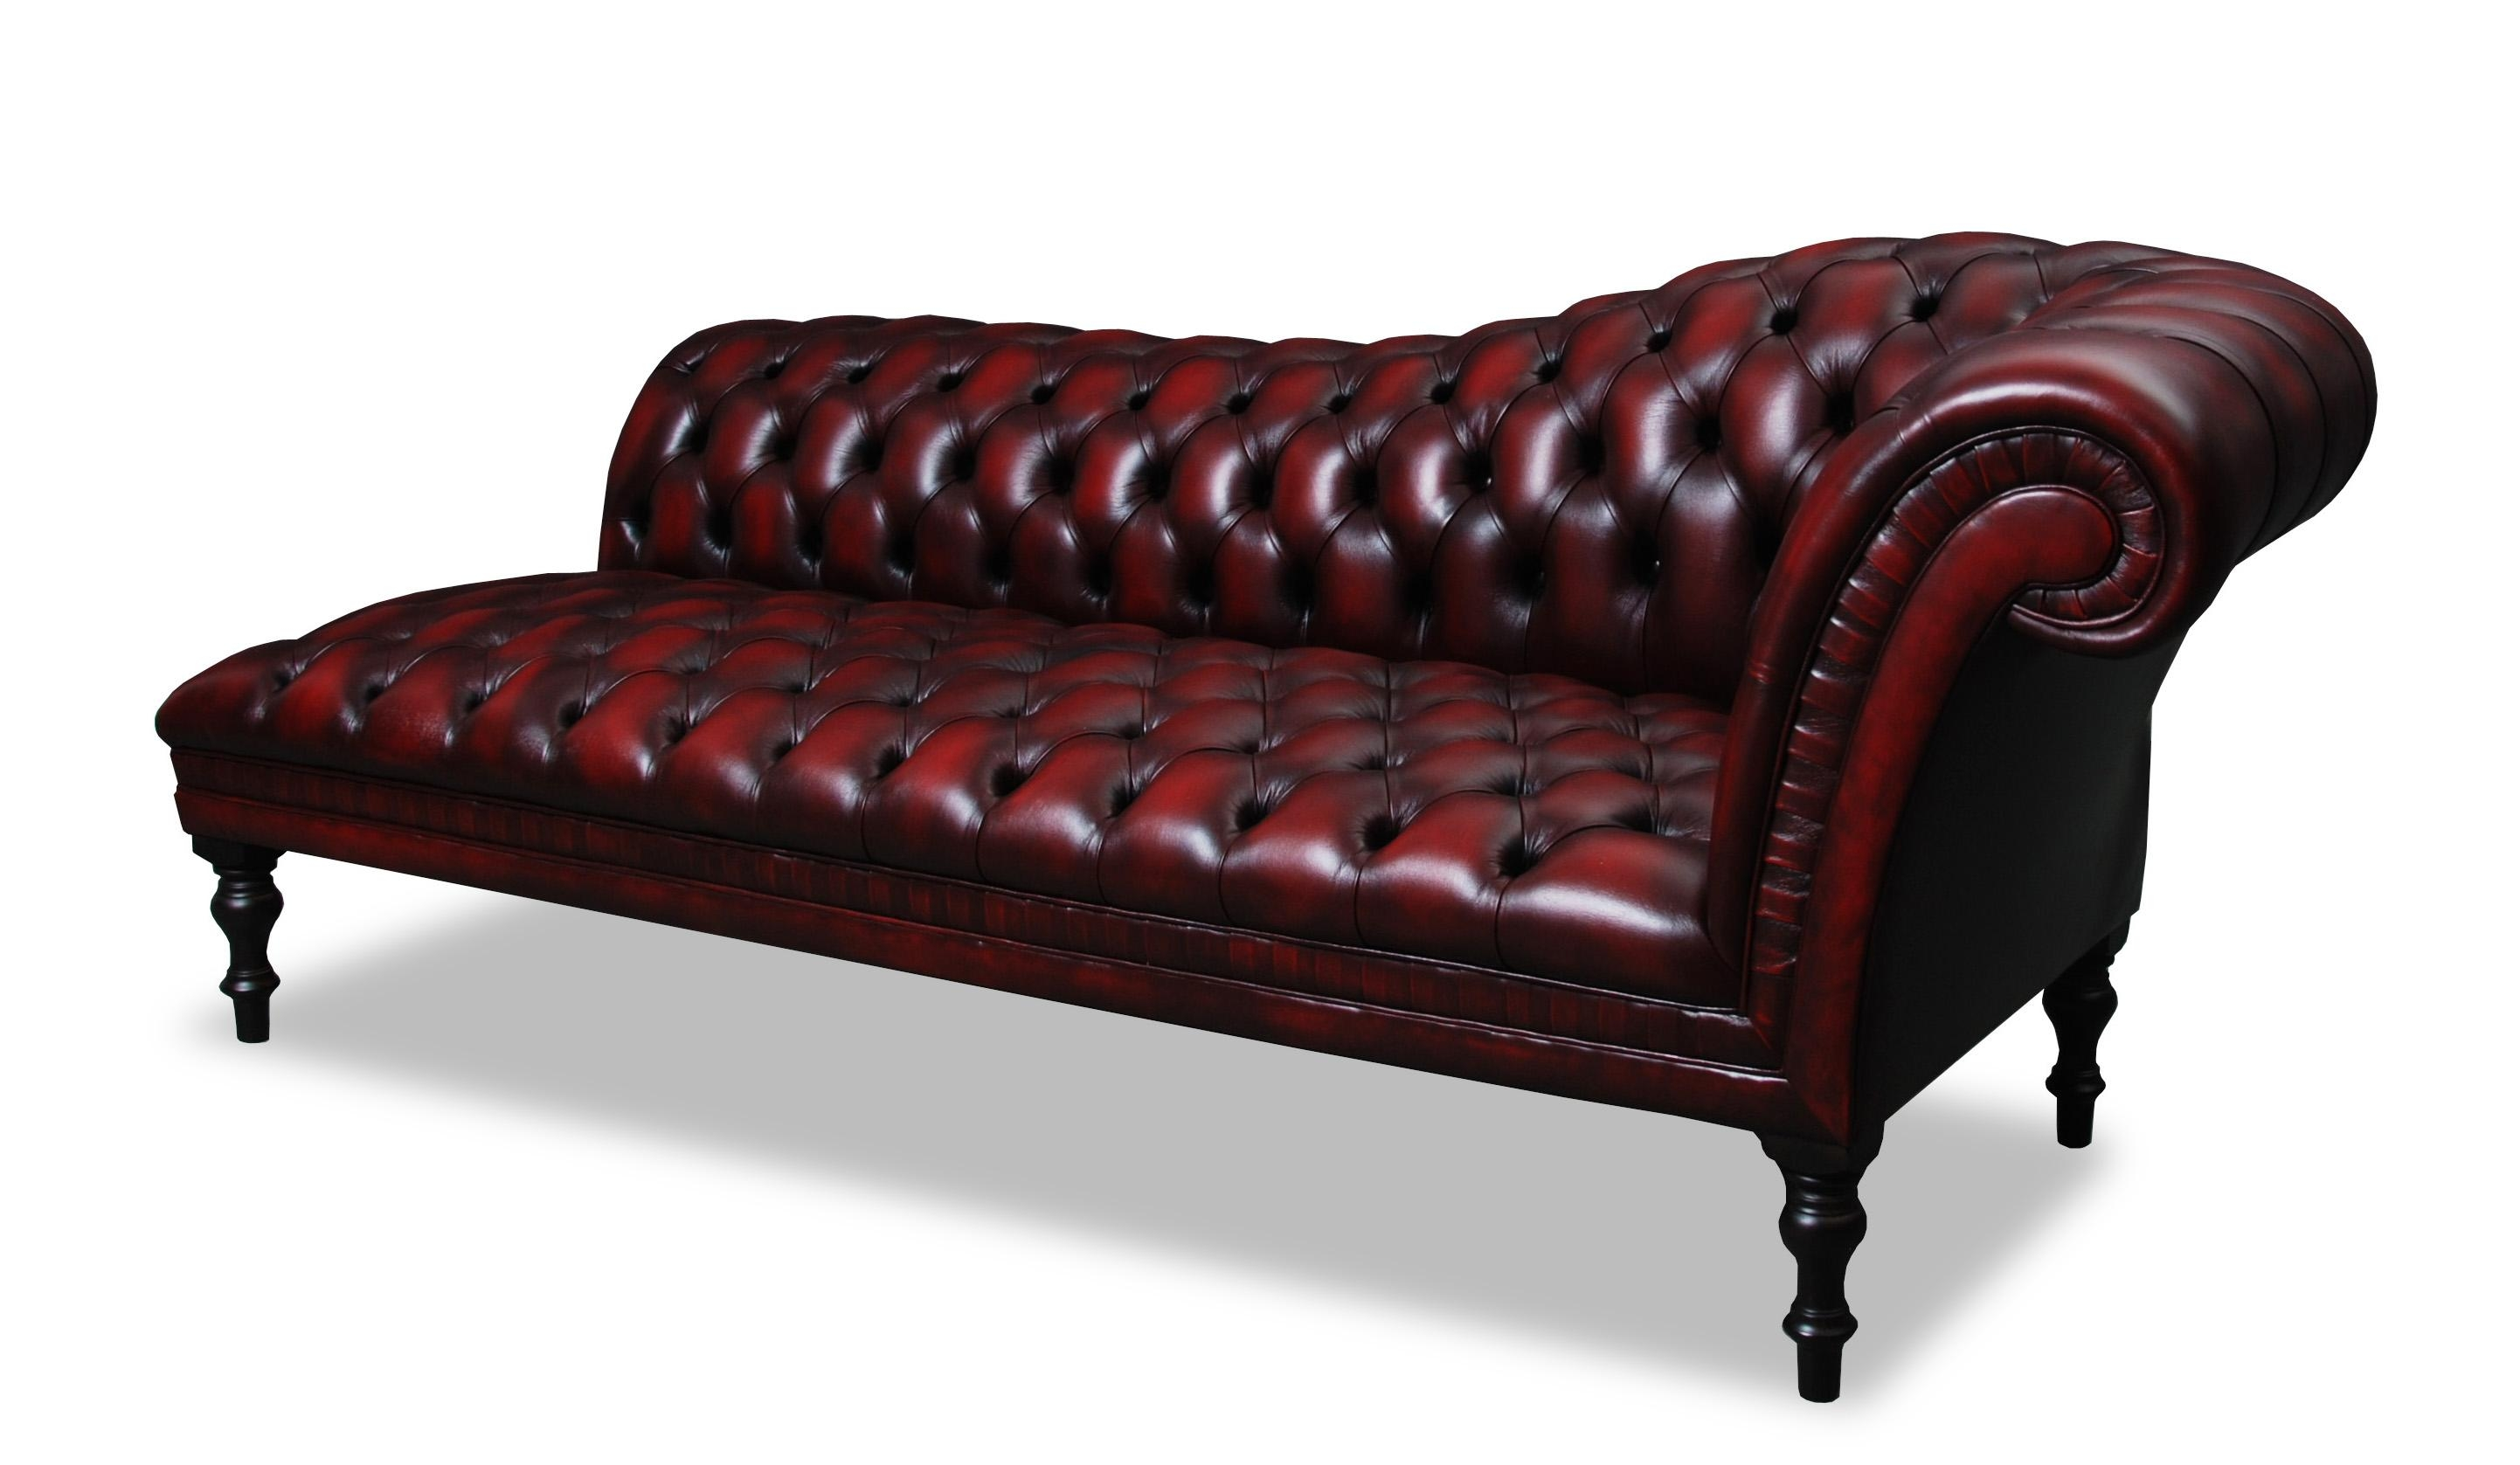 Storage Chesterfield Chaise Lounge Upholstered In Antique Oxblood Throughout Red Leather Chesterfield Sofas (Image 15 of 20)